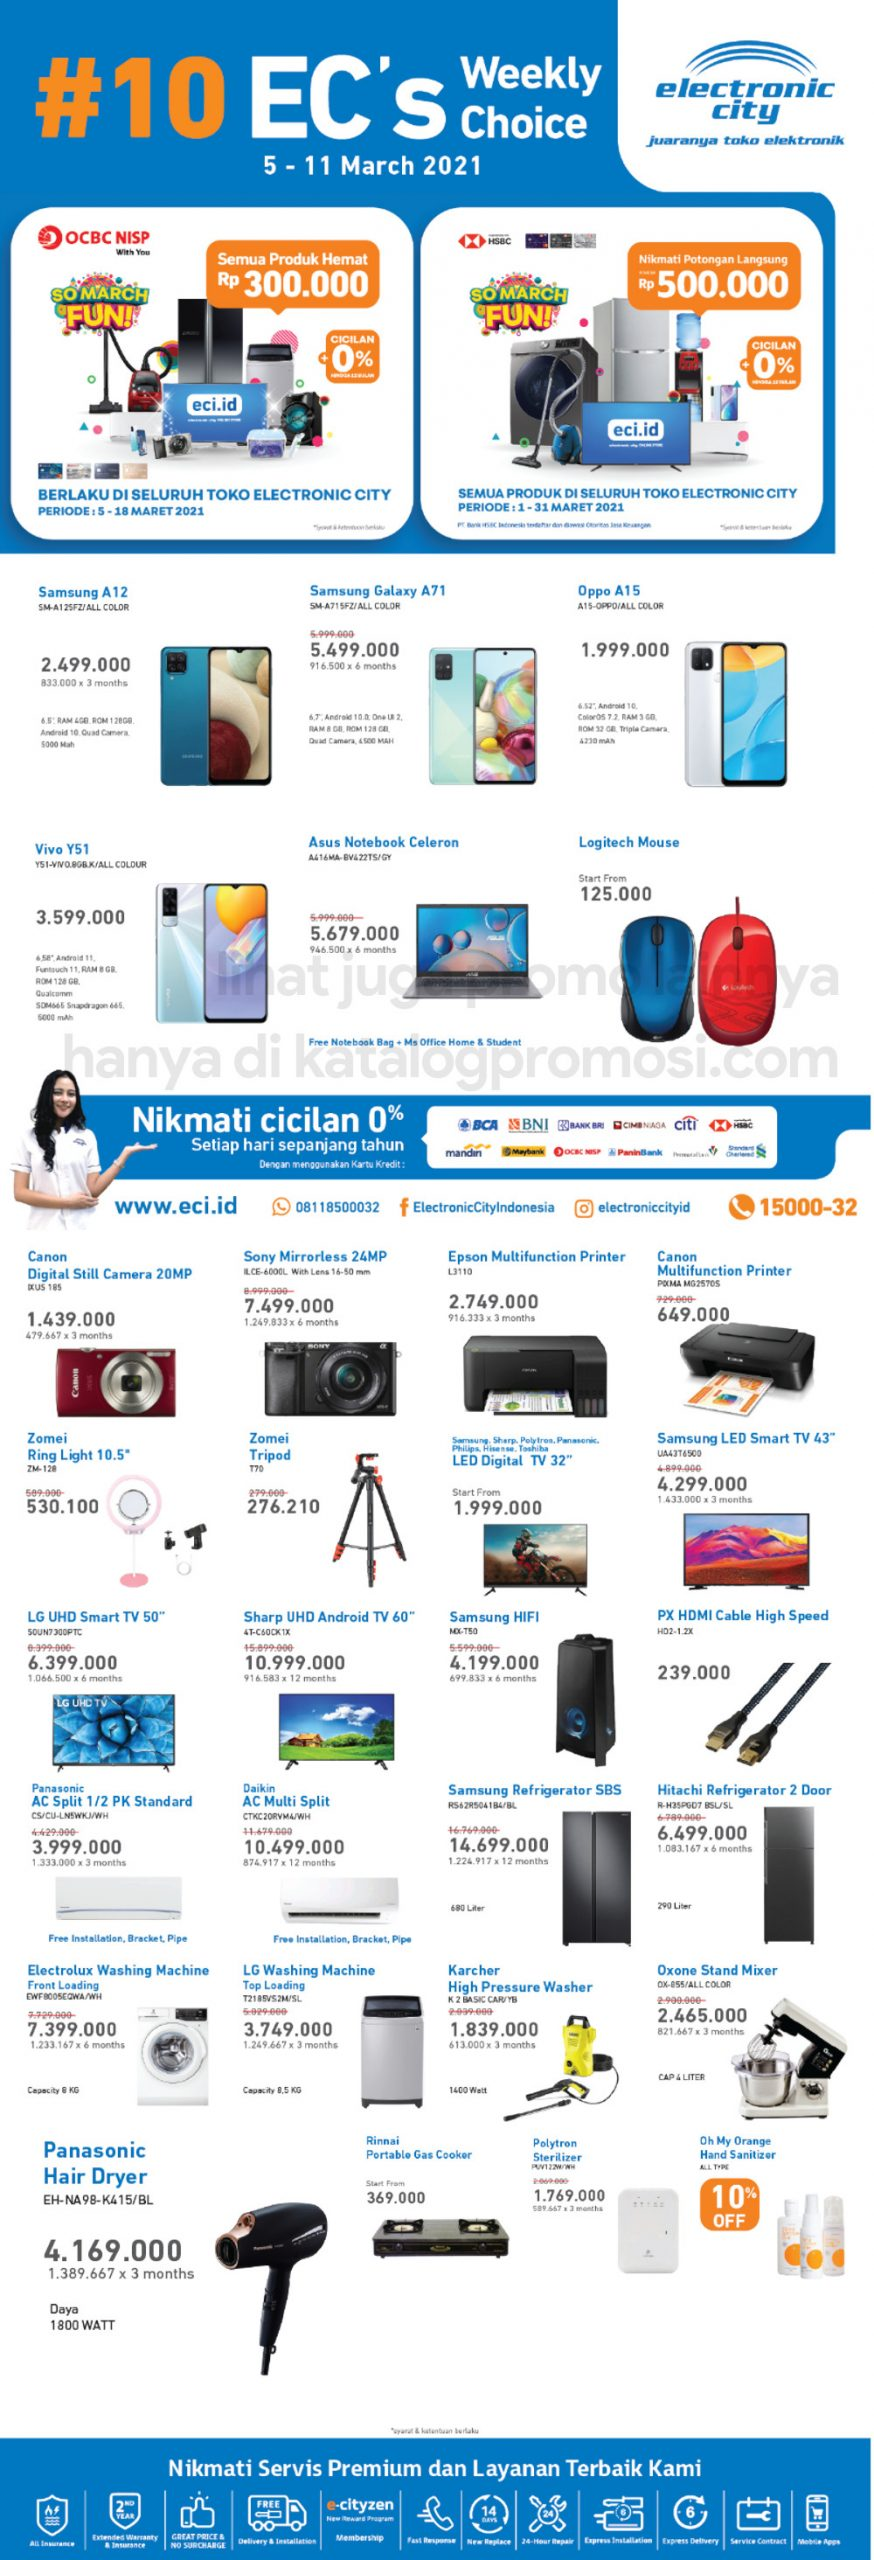 Promo Electronic City Katalog Weekly Special periode 05-11 Maret 2021